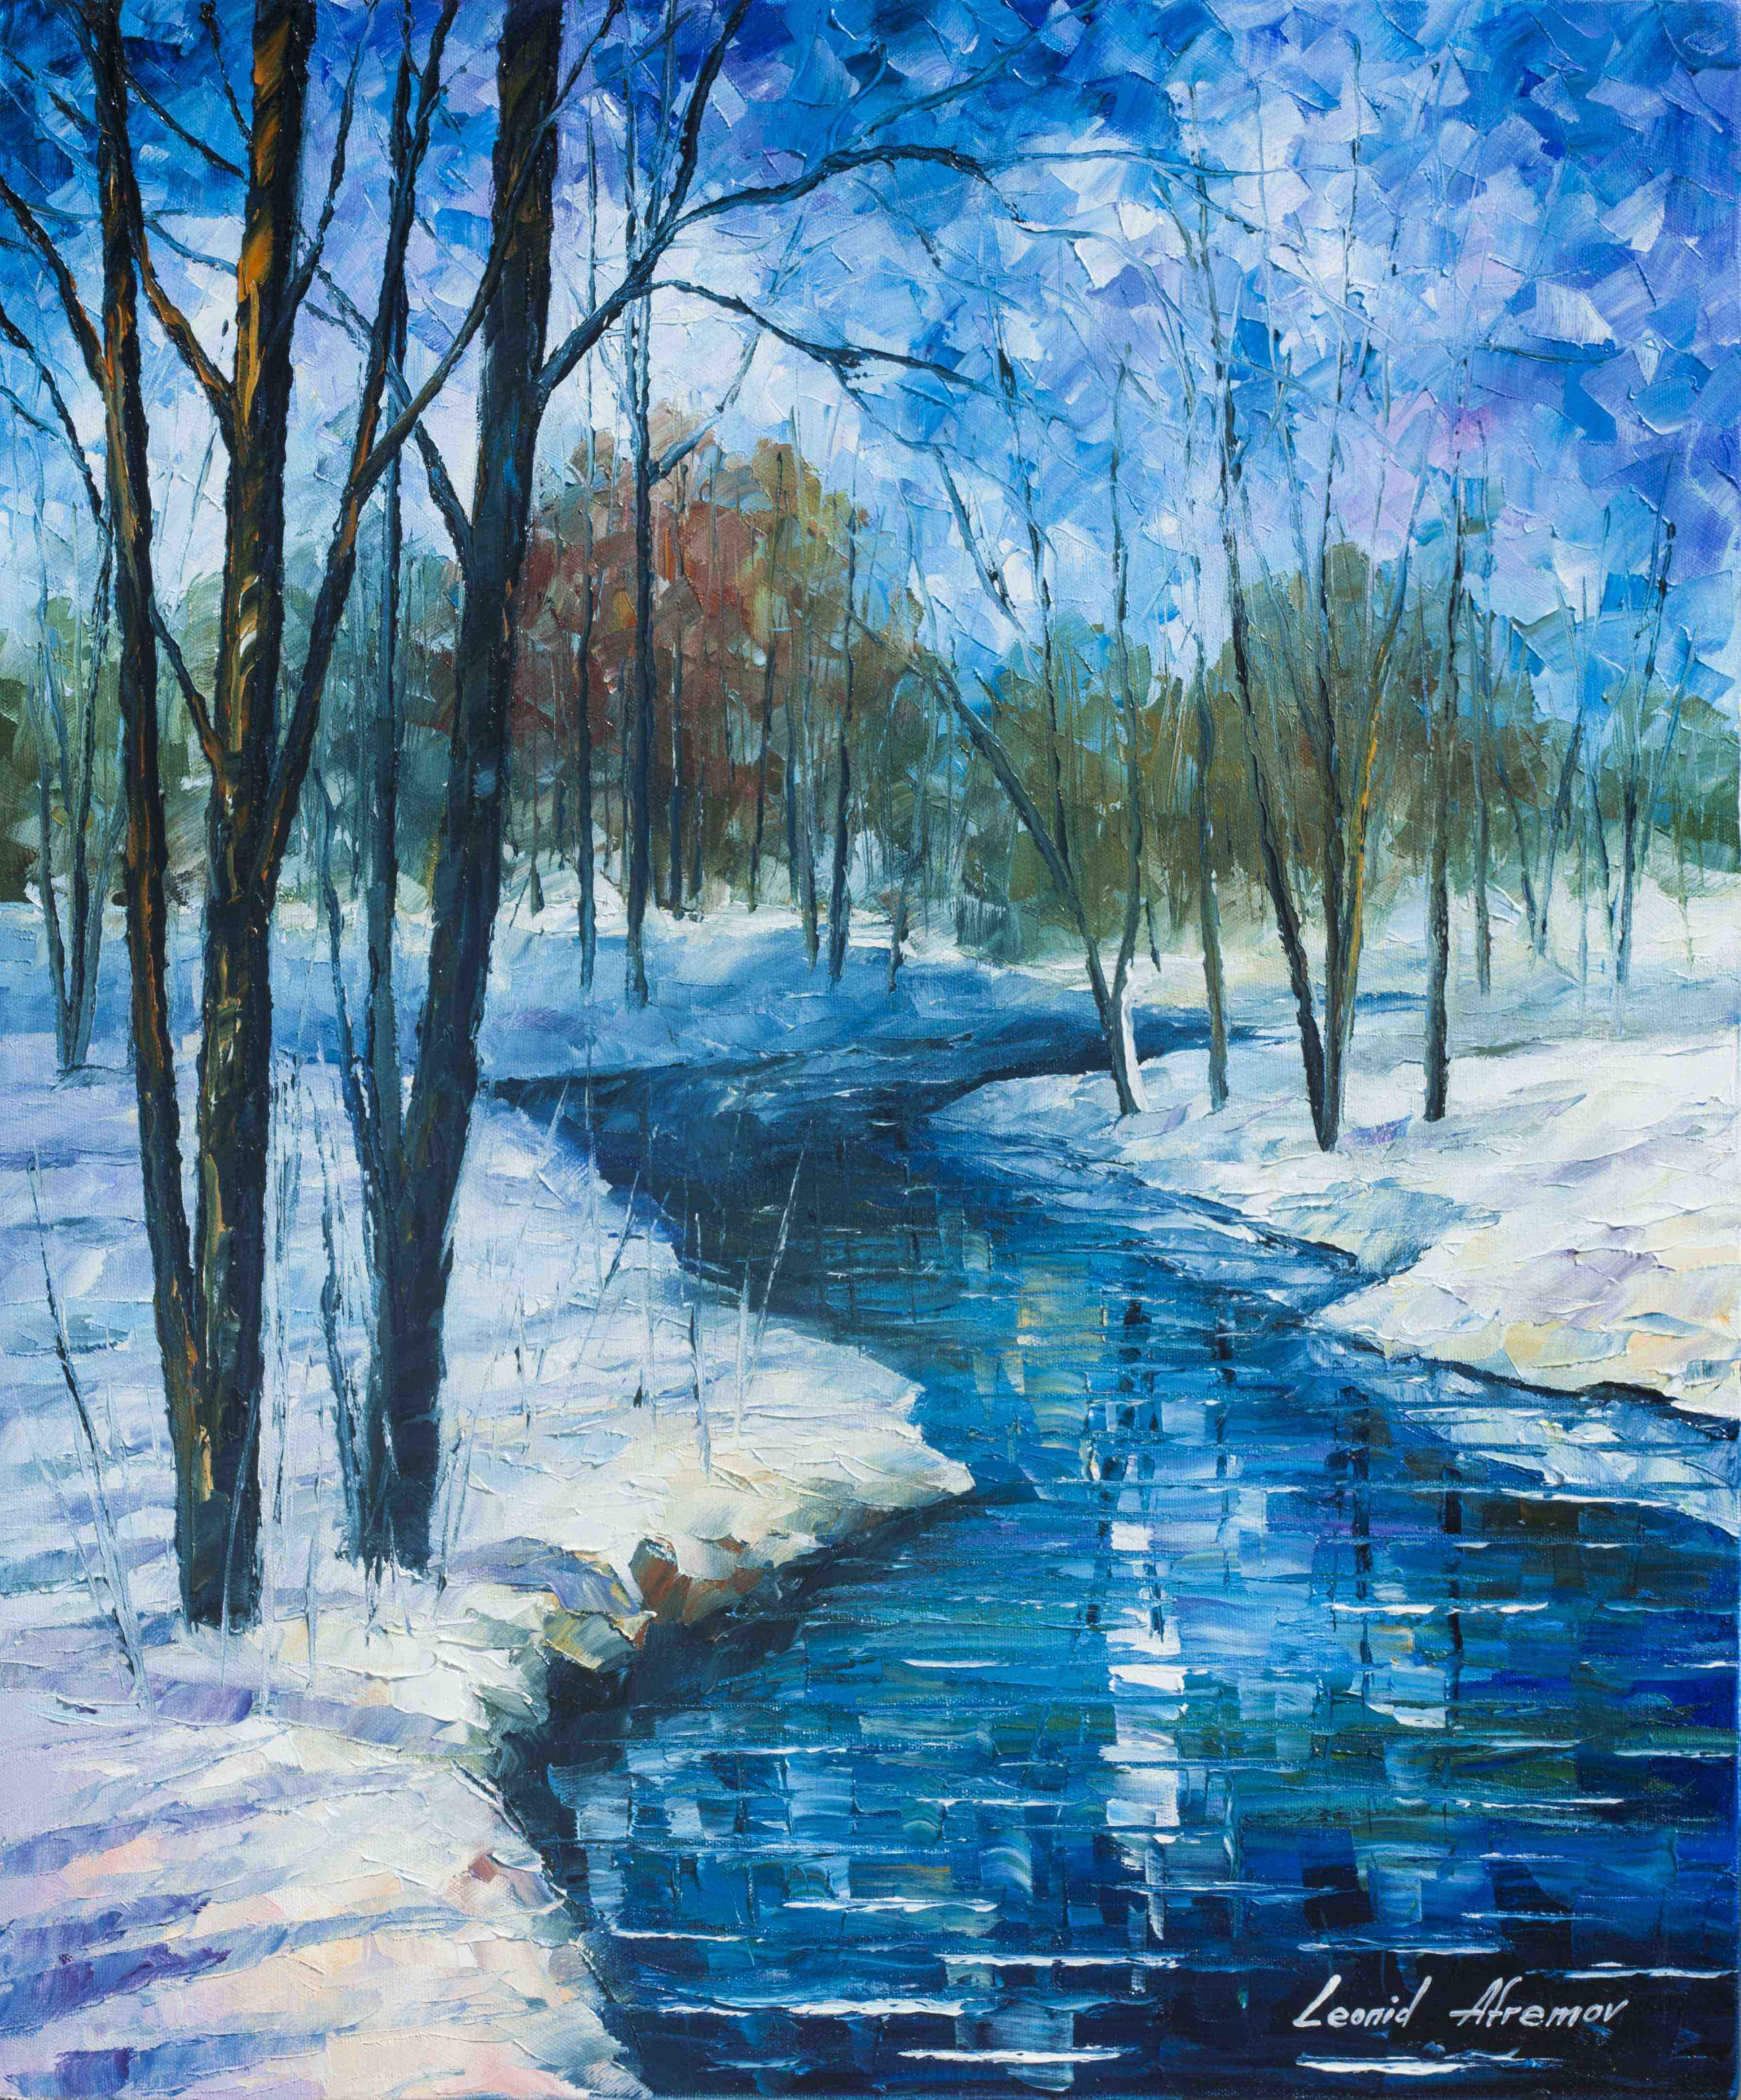 Frozen Stream Original Limited Edition Of 10 Oil Painting On Canvas By Leonid Afremov 20 X24 50cm X 60cm Palette Knife Oil Painting On Canvas Pintura Paisajistica Cuadro Invernal Paisaje Invernal